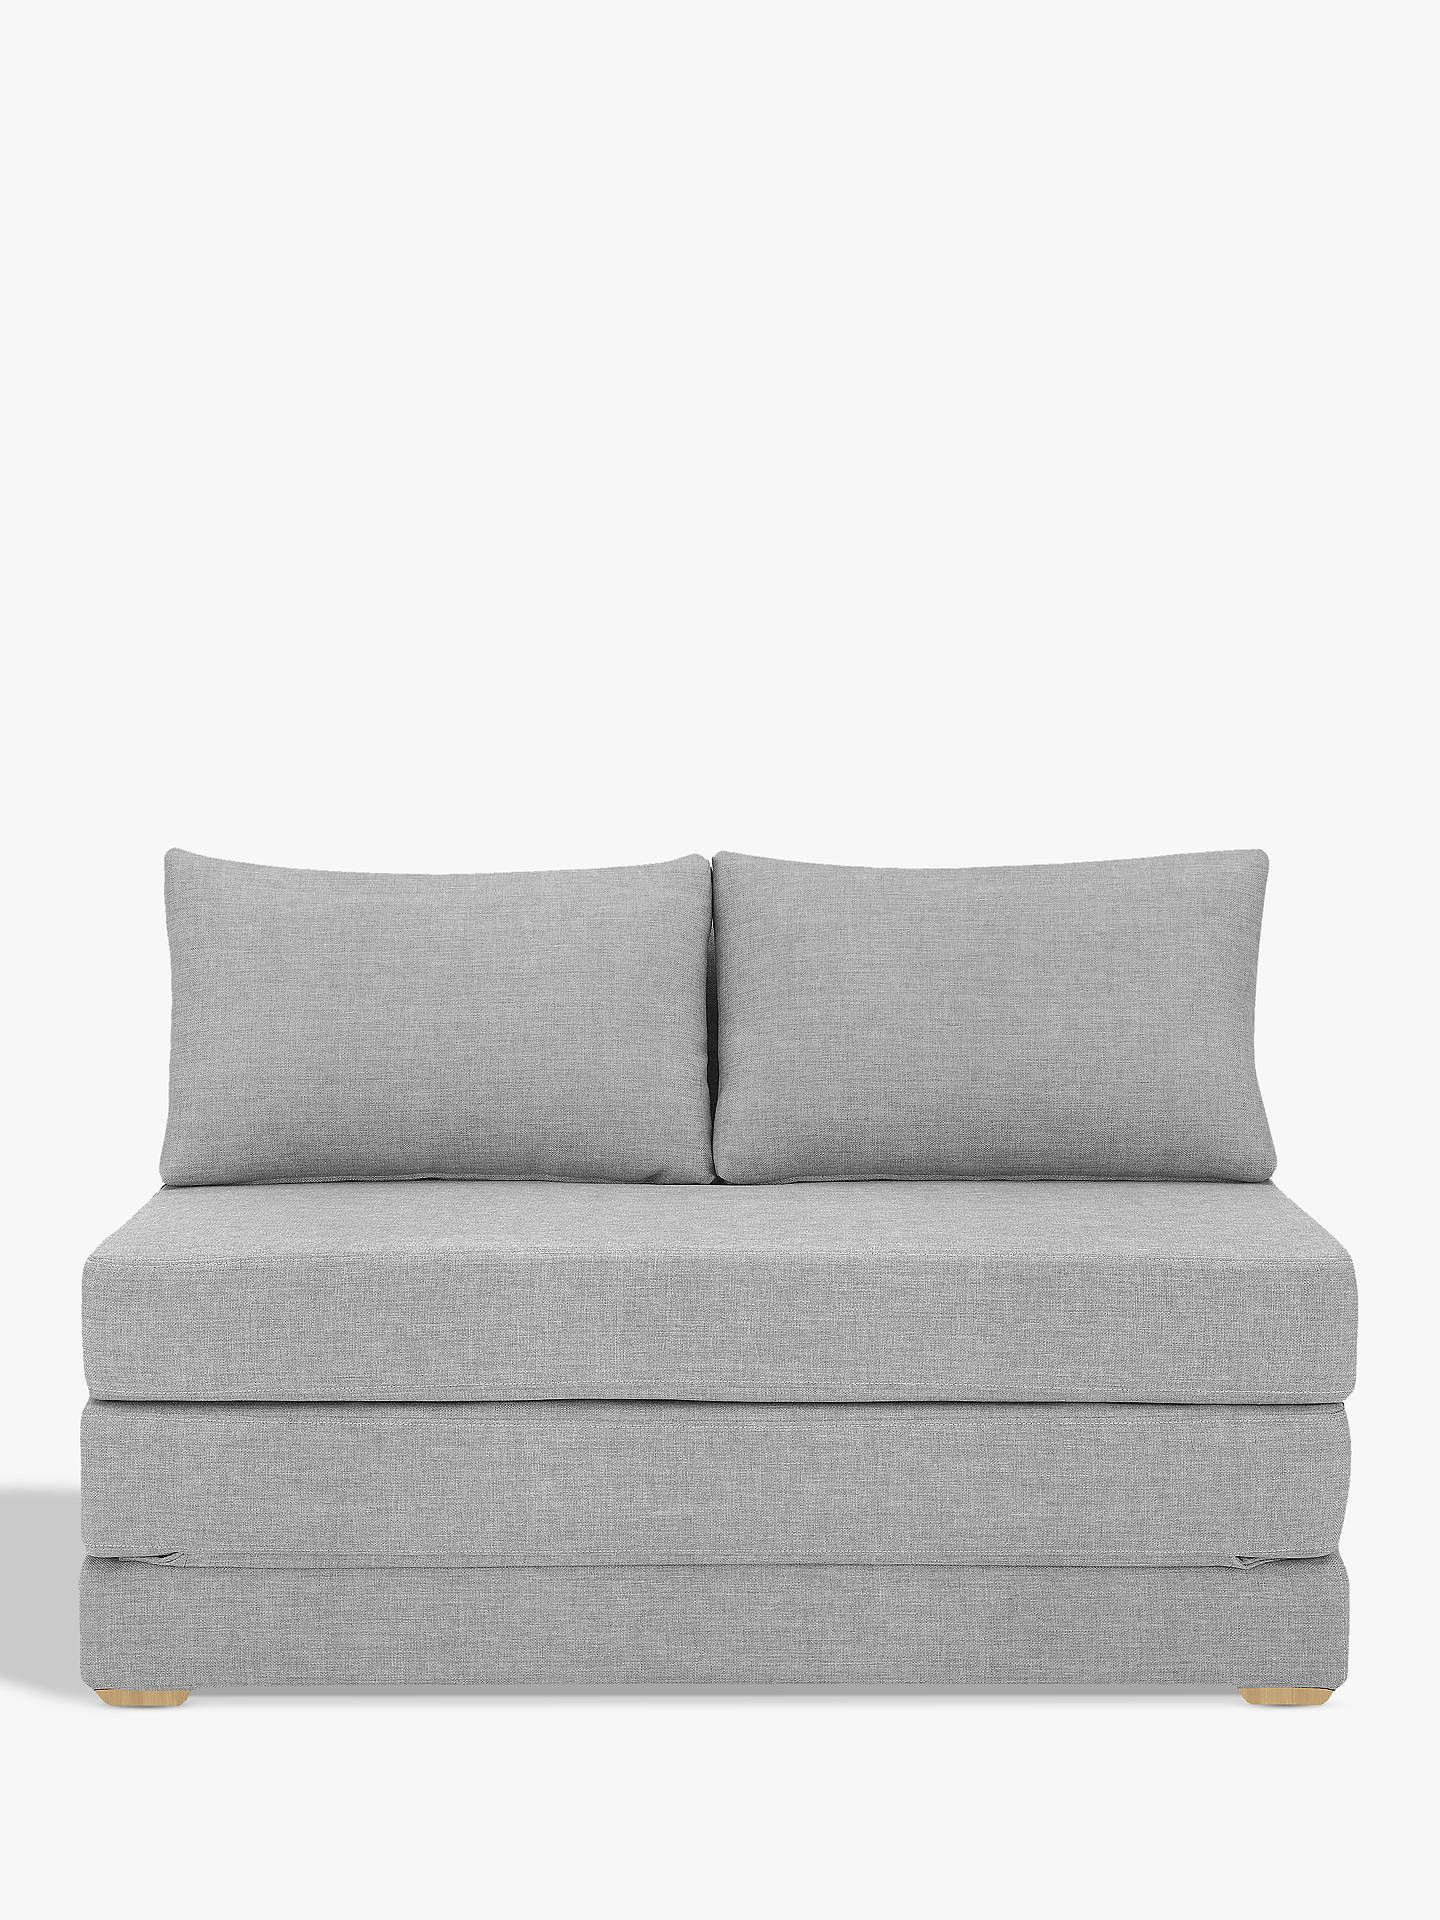 House By John Lewis Kip Small Sofa Bed With Foam Mattress In 2020 Sofa Bed Small Sofa Bed Small Sofa